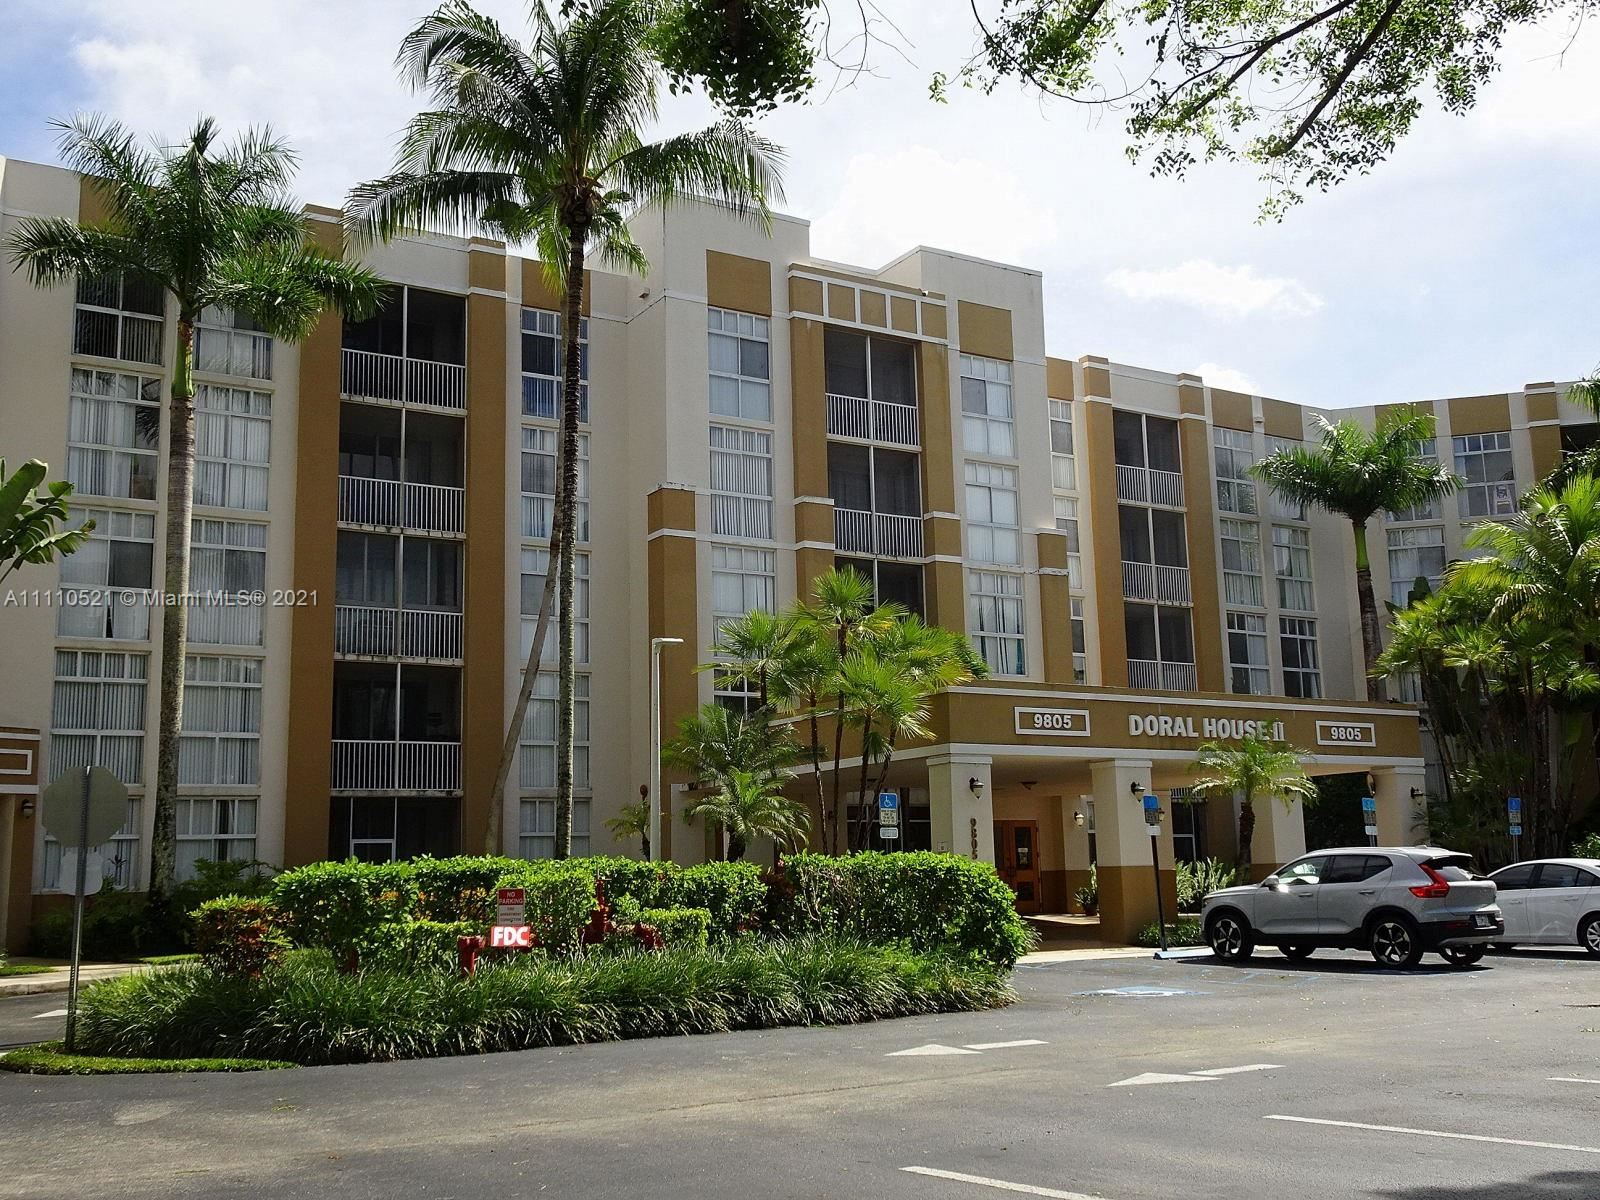 9805 NW 52nd St #205, Doral, FL 33178 - #: A11110521